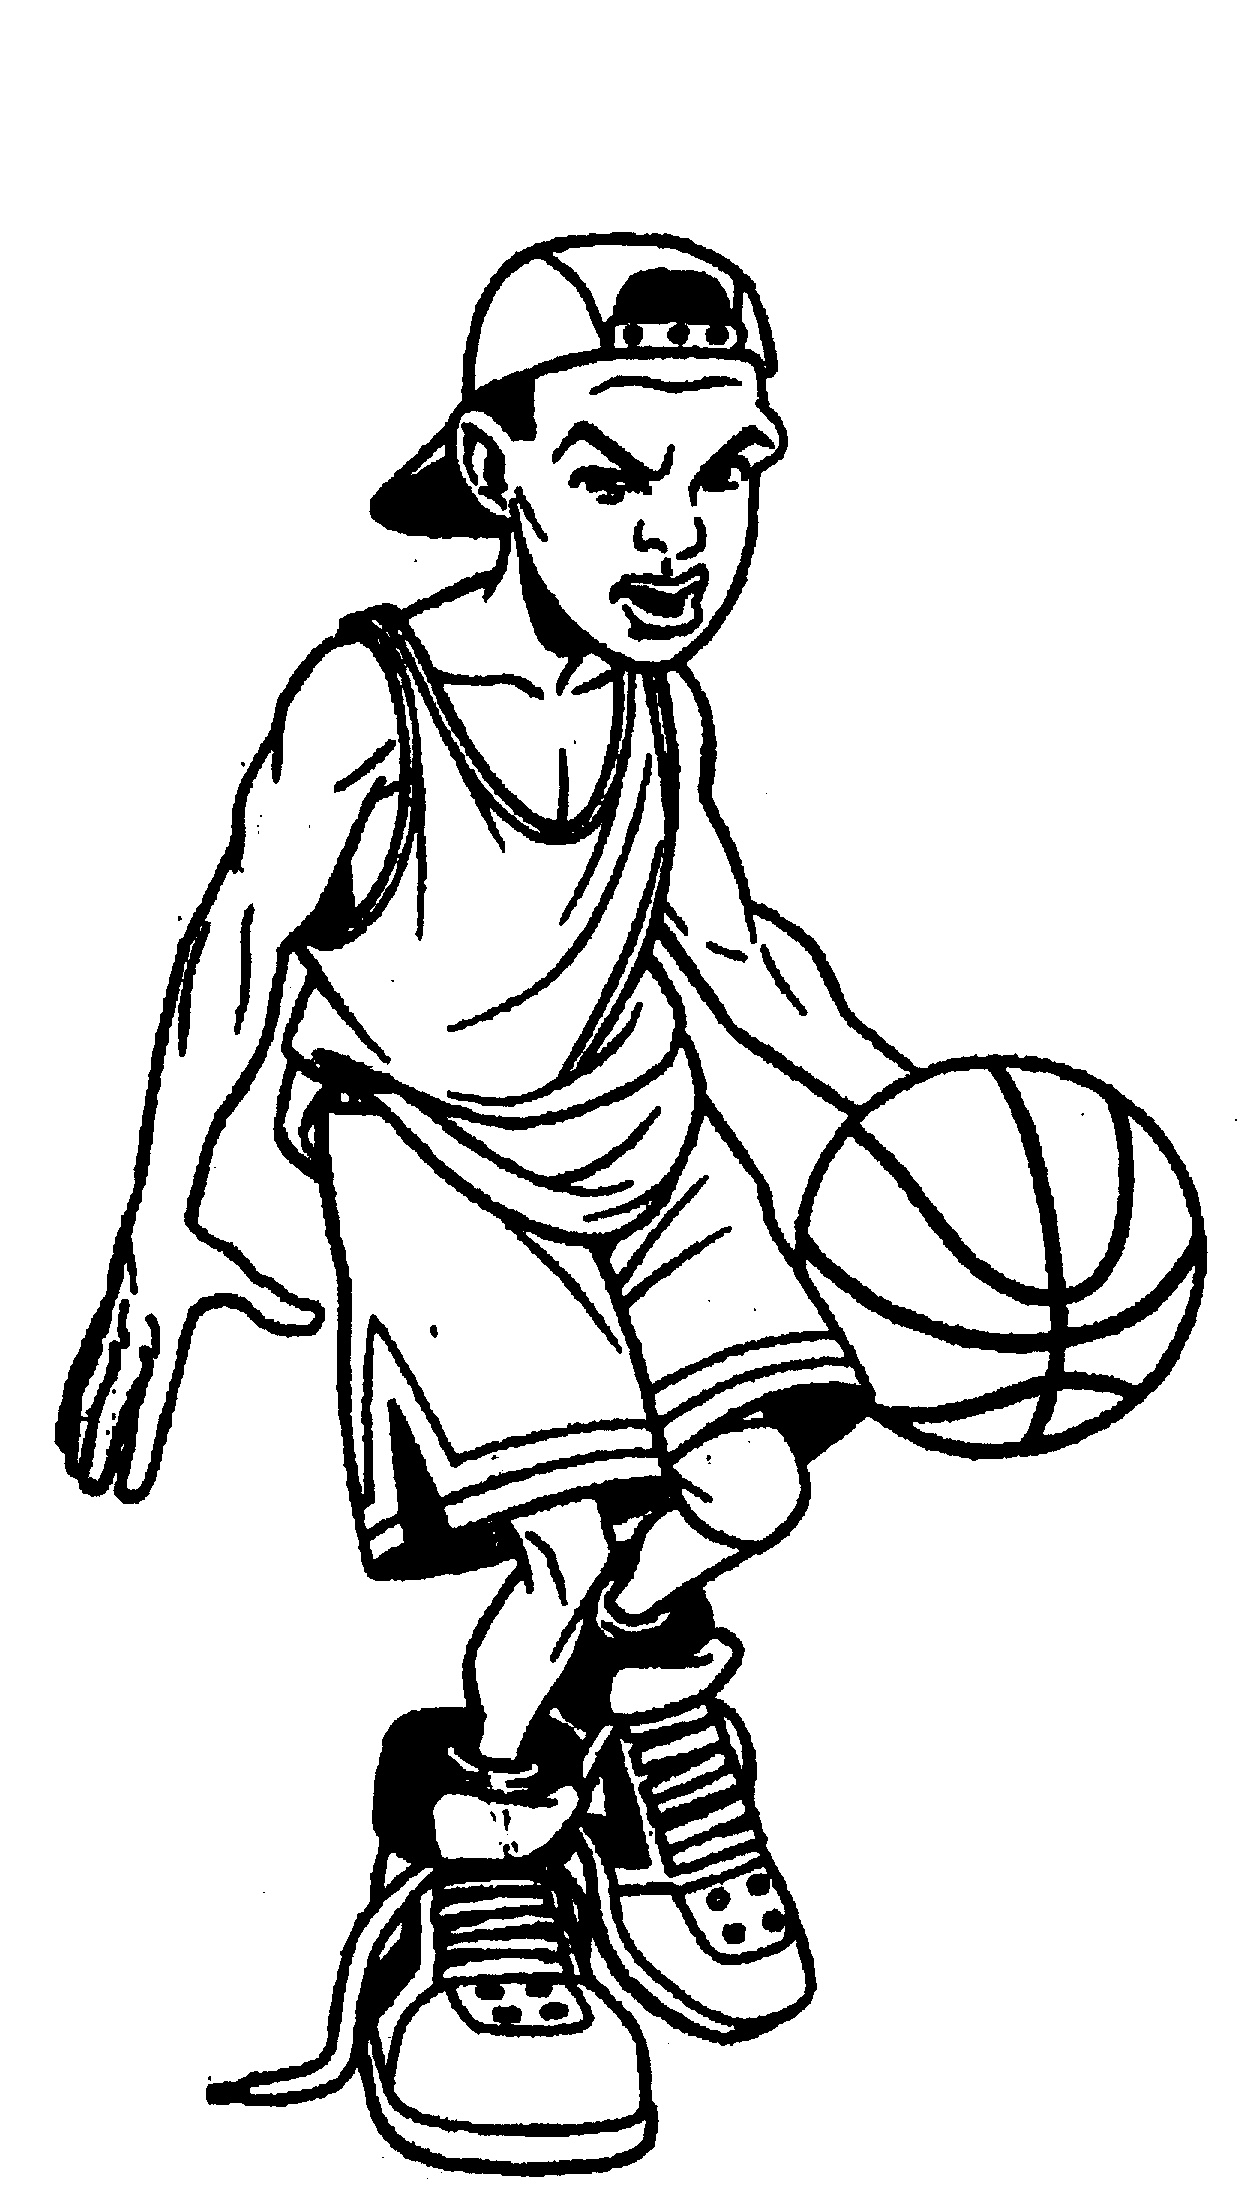 drawing of a basketball basketball drawing png transparent png 523x525 free drawing of basketball a